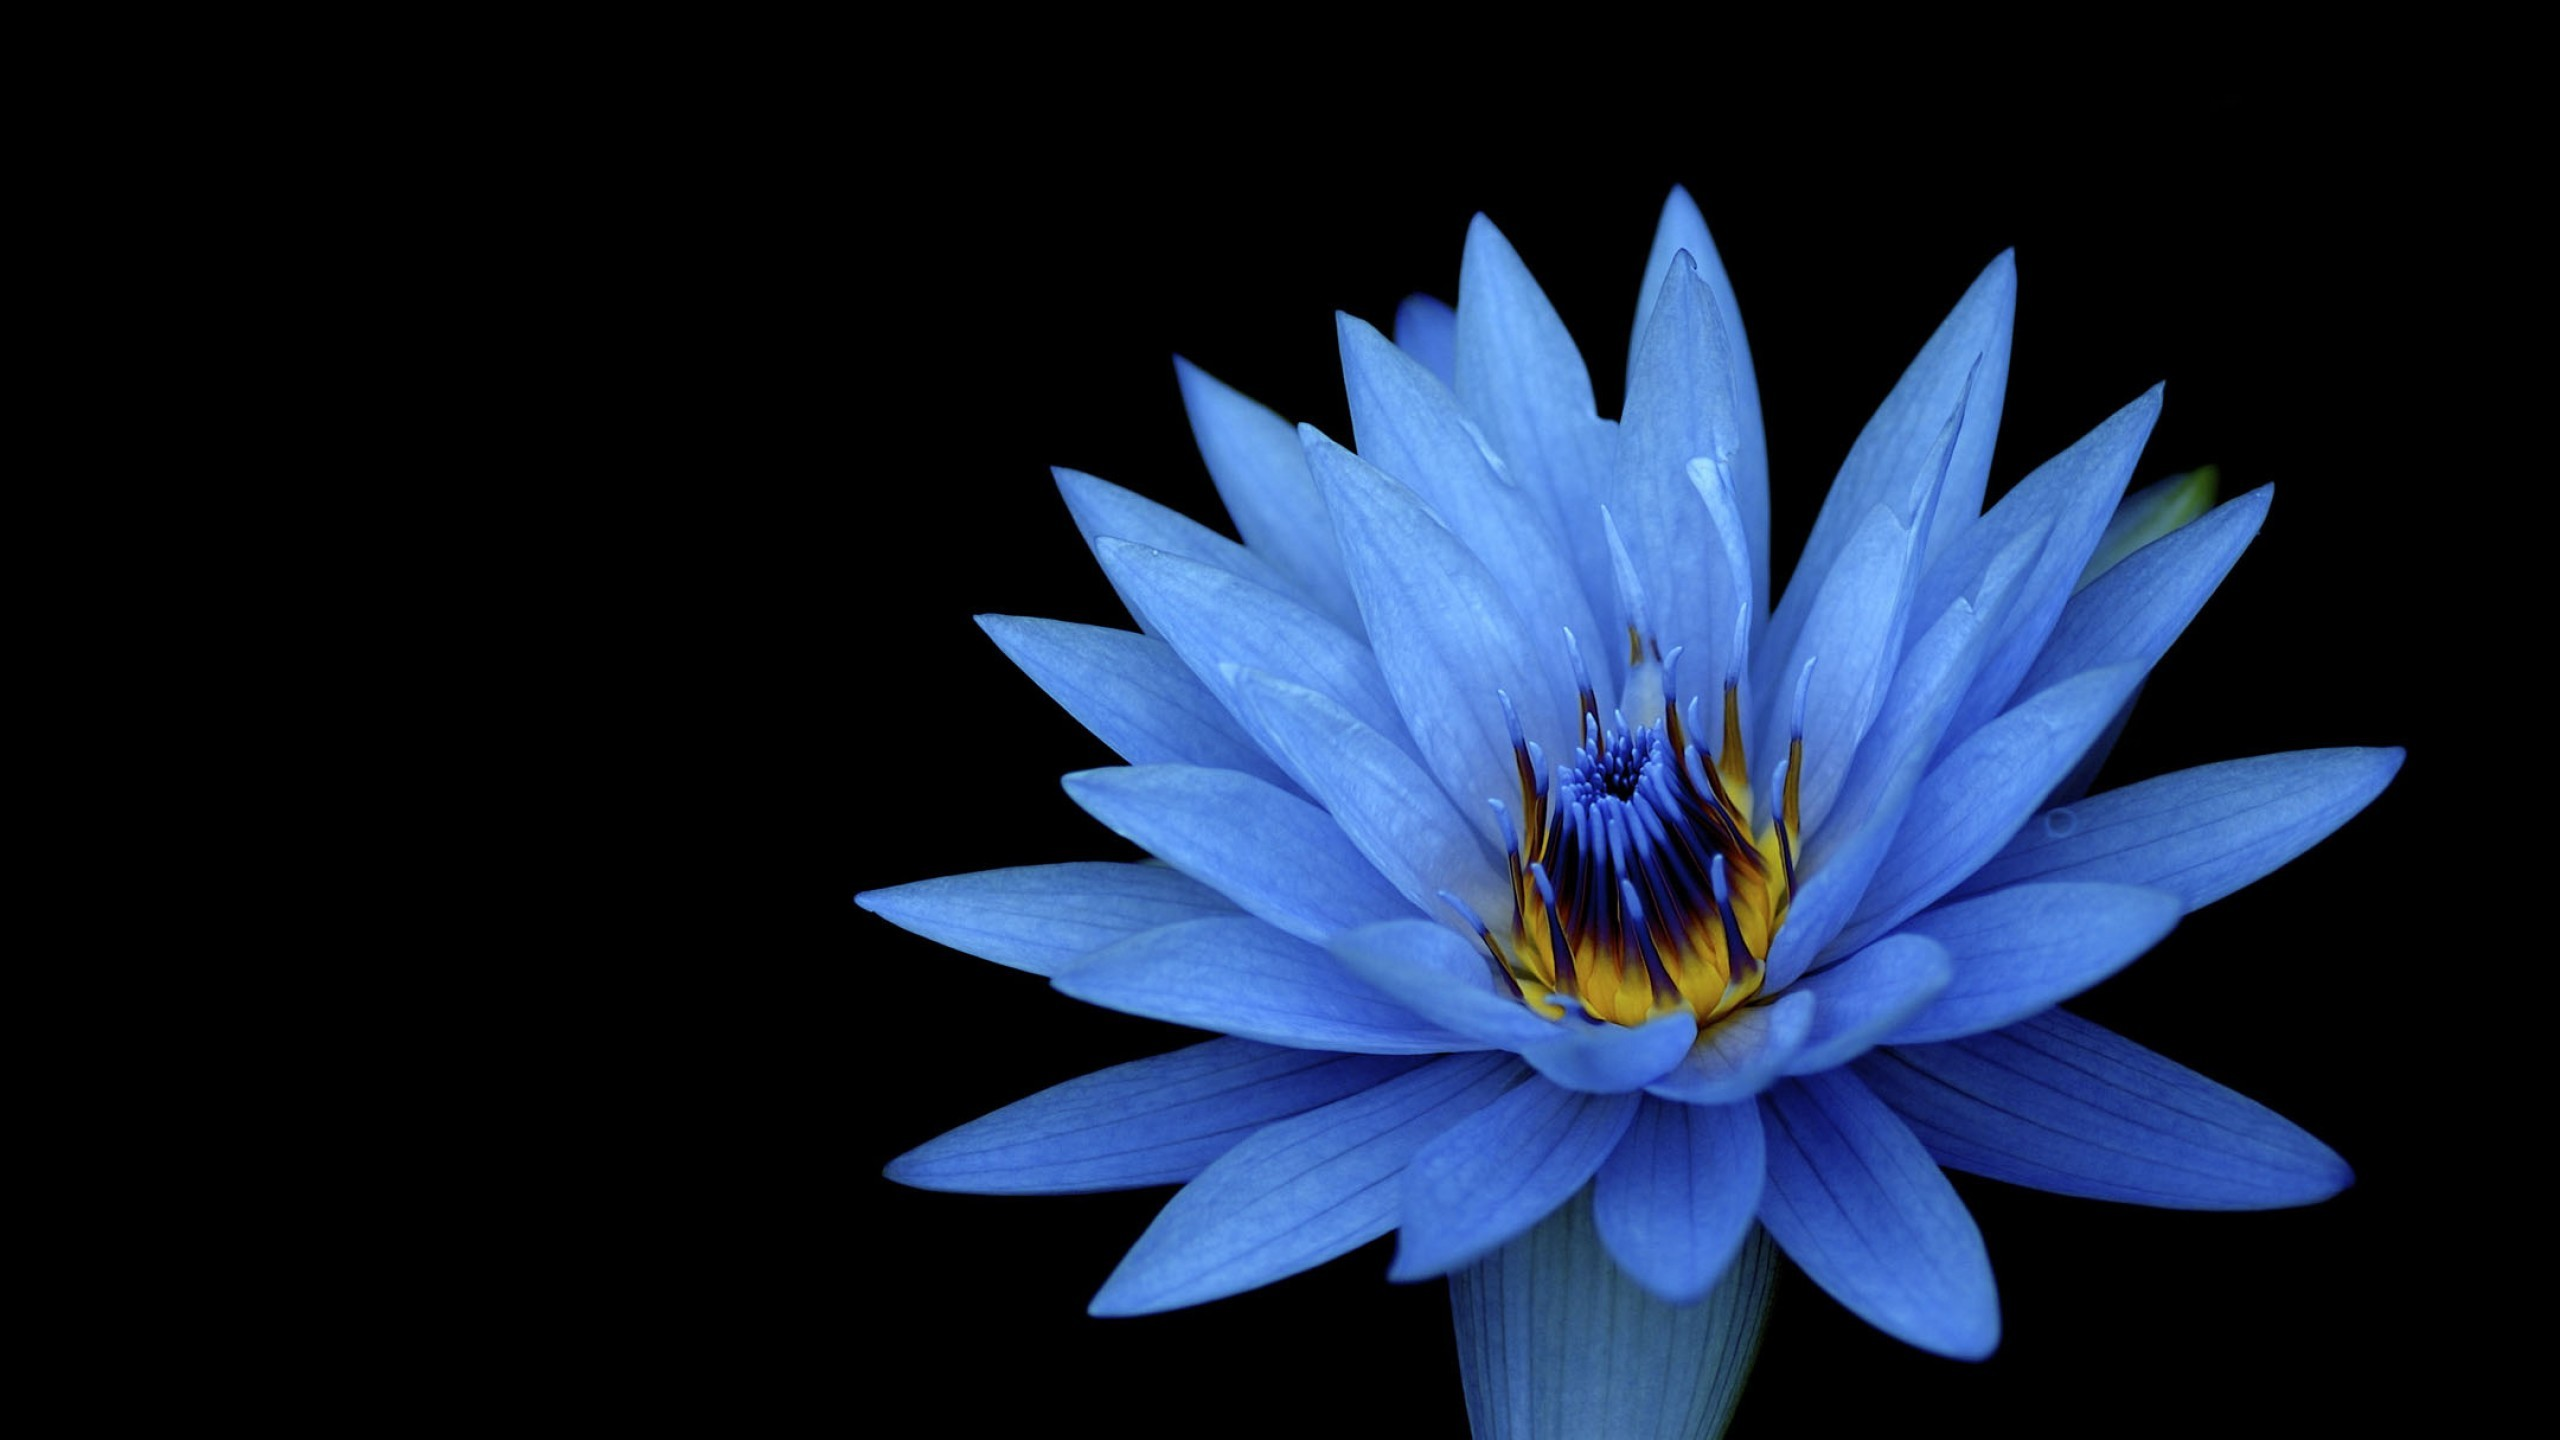 2560x1440 Tags: Dahlia flowers, Blue flowers, HD, Dark background